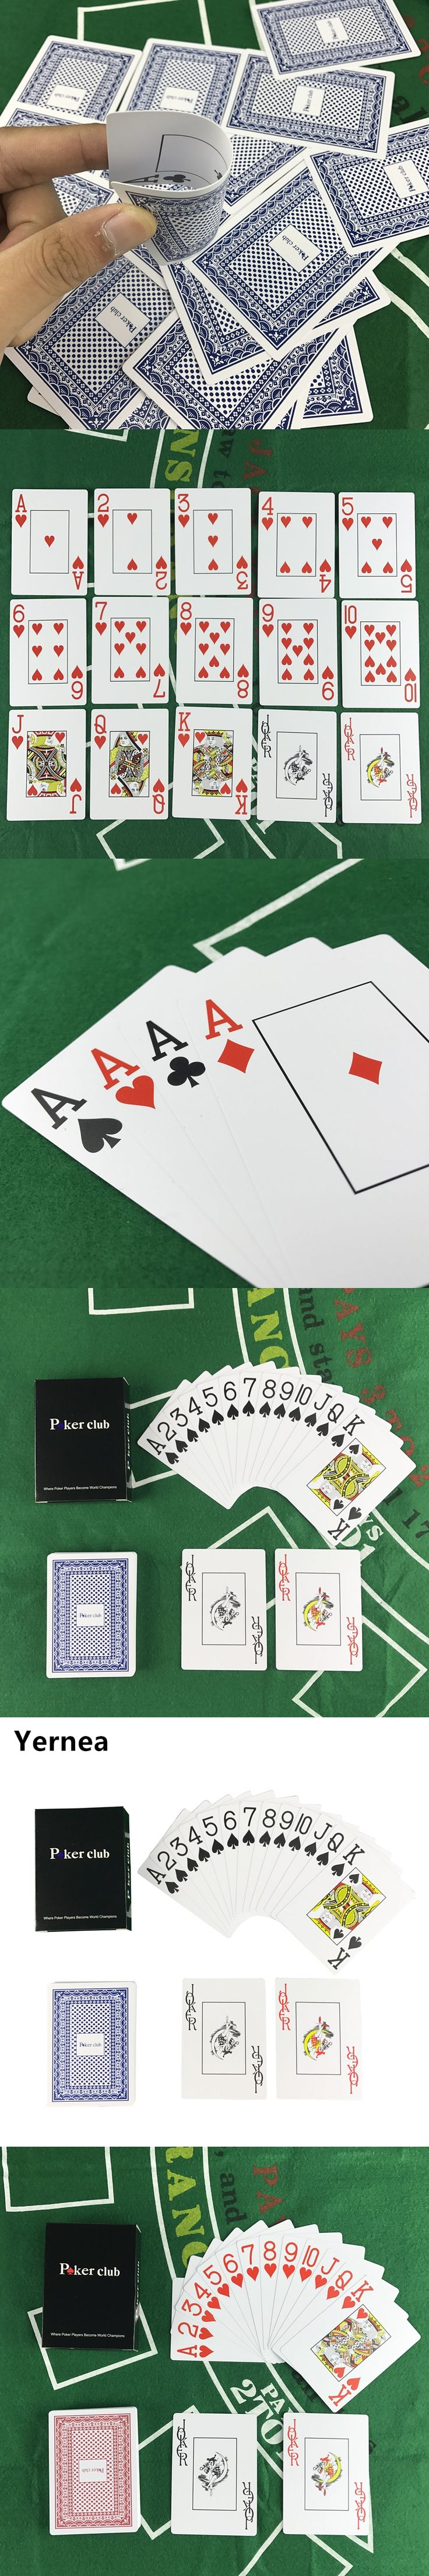 Hot new Smooth Waterproof 1 Sets / Lot Poker Baccarat Texas Entertainment Plastic PVC Card game Poker Club 63 * 88 mm